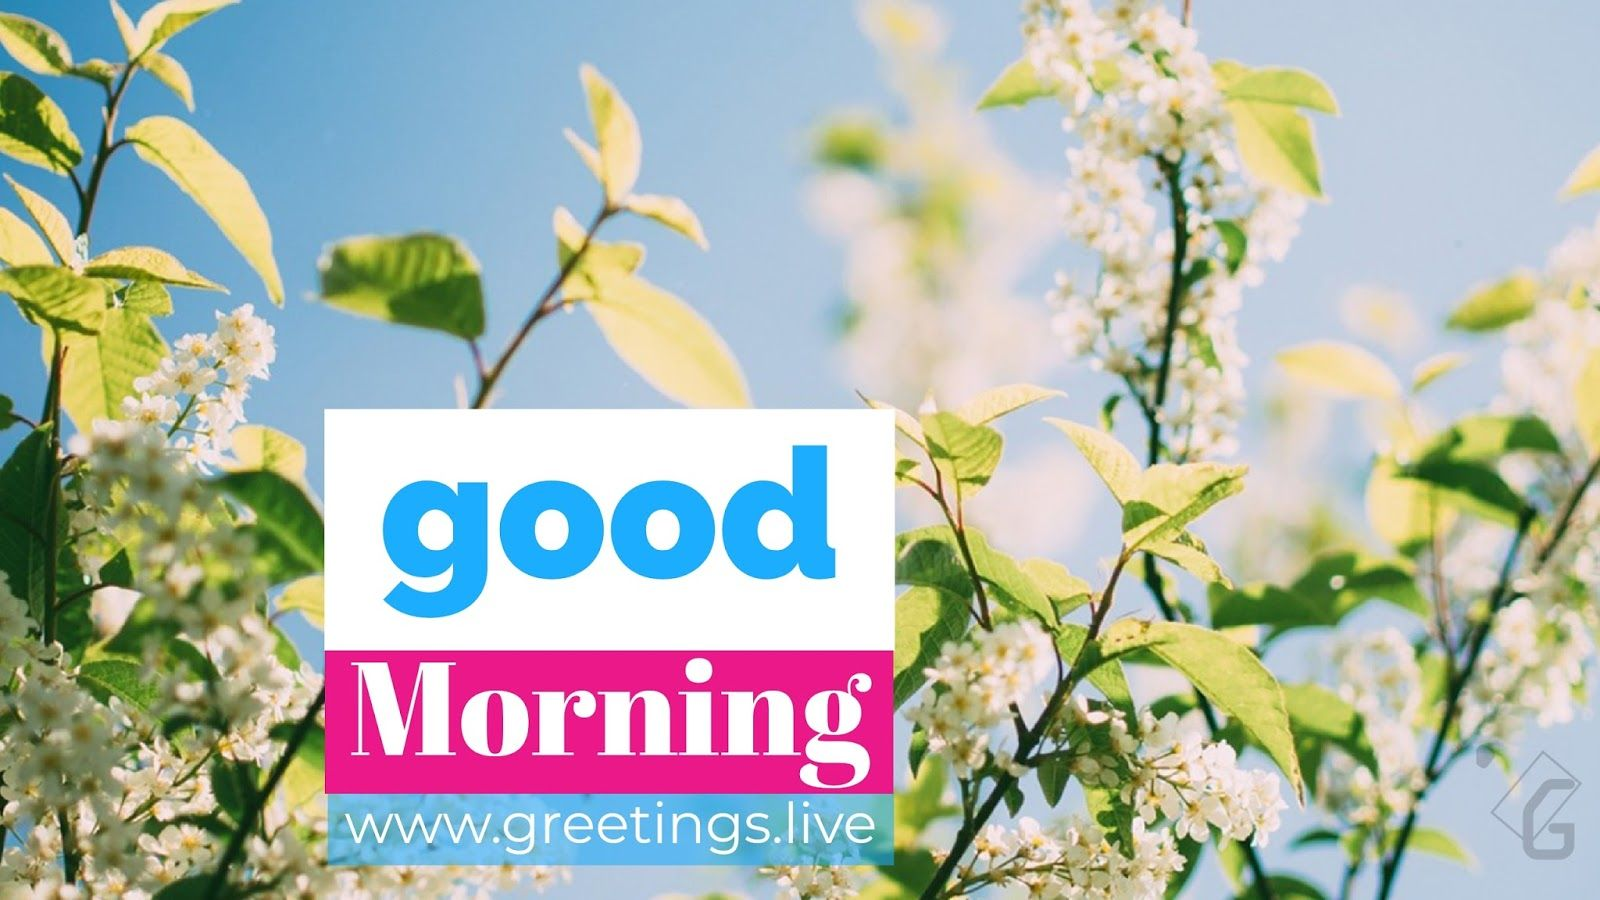 Good Morning Small White Flowers Green Leaf Hd Greetings Live